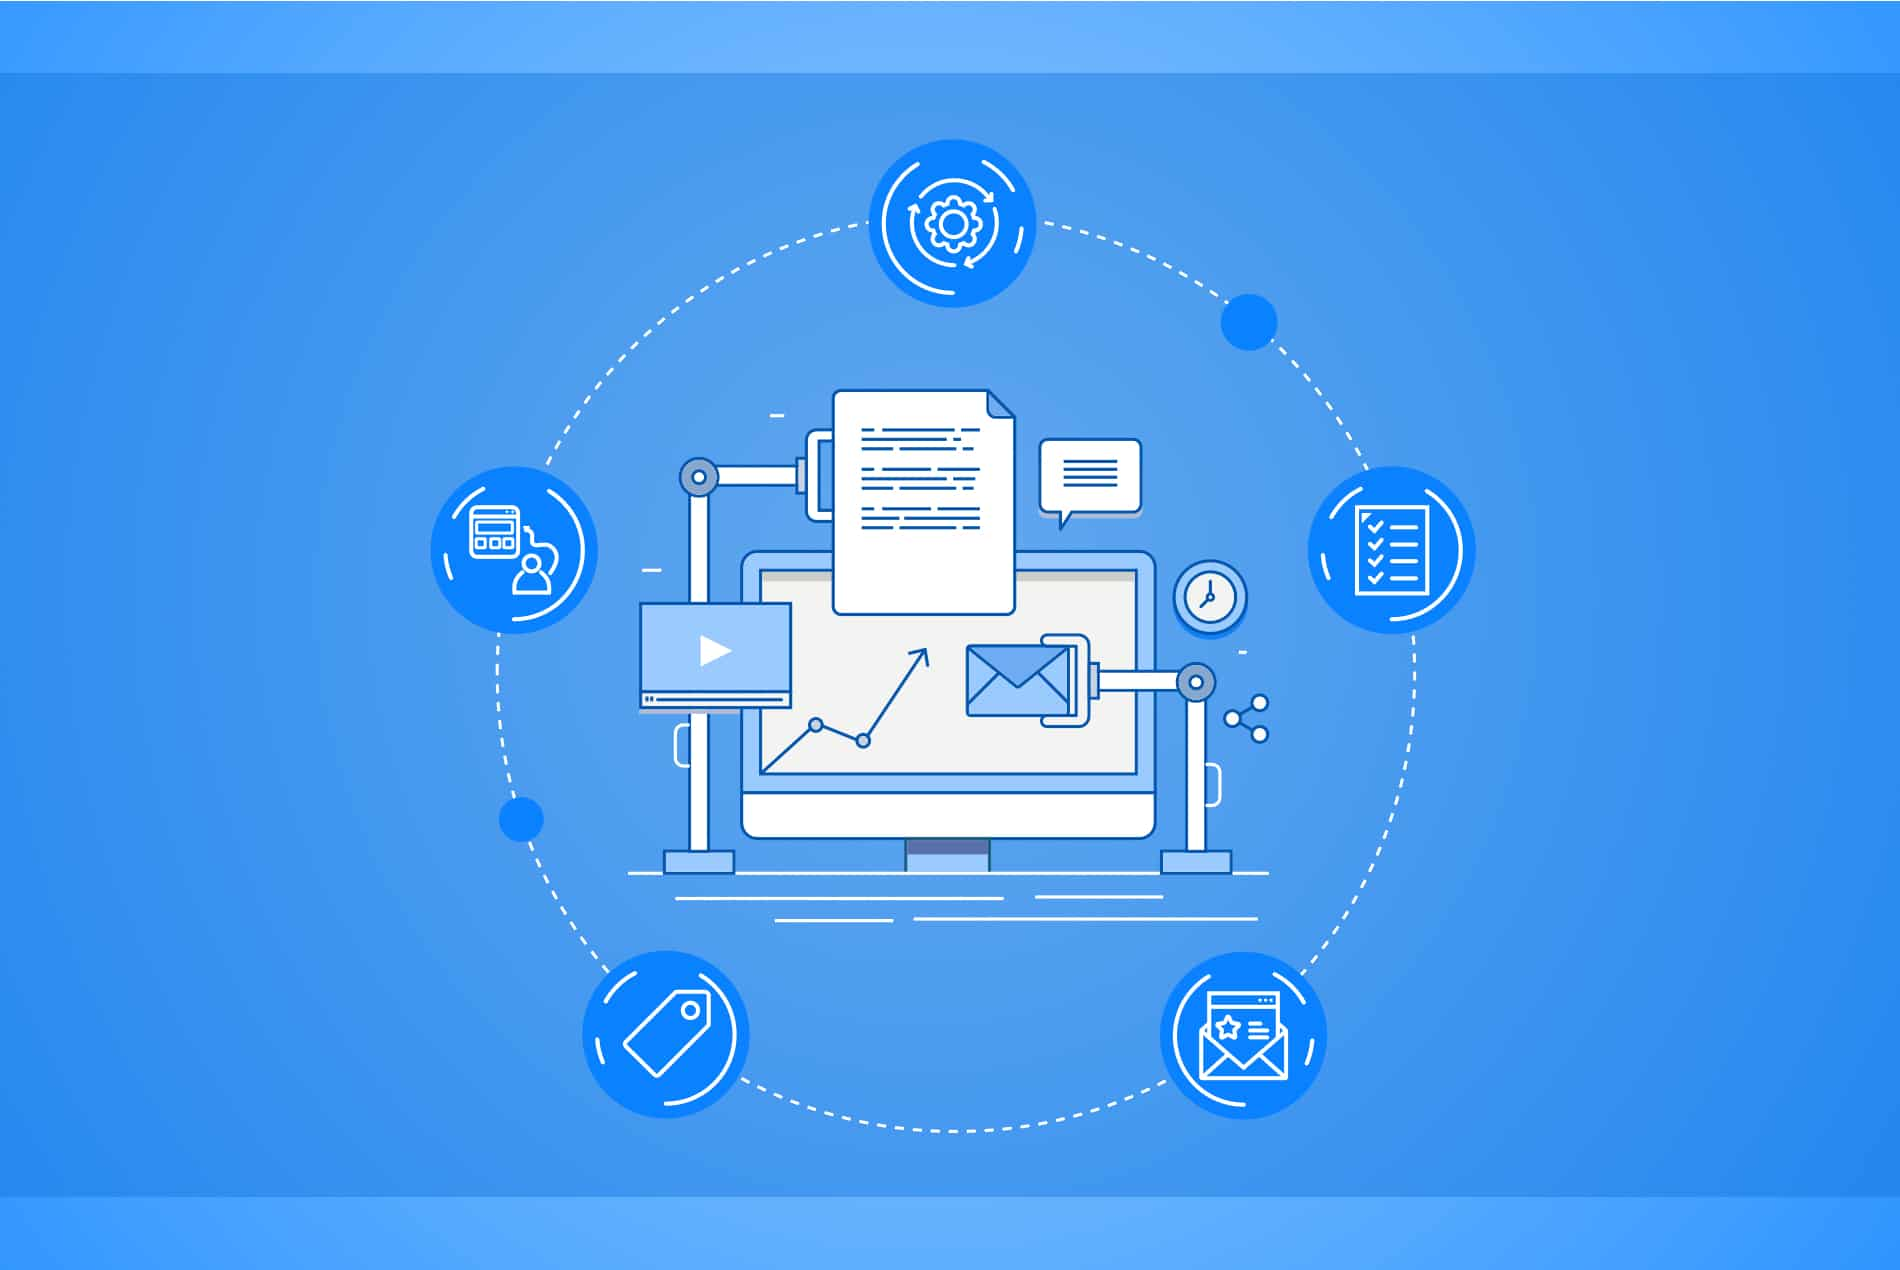 5 things your marketing team should automate today